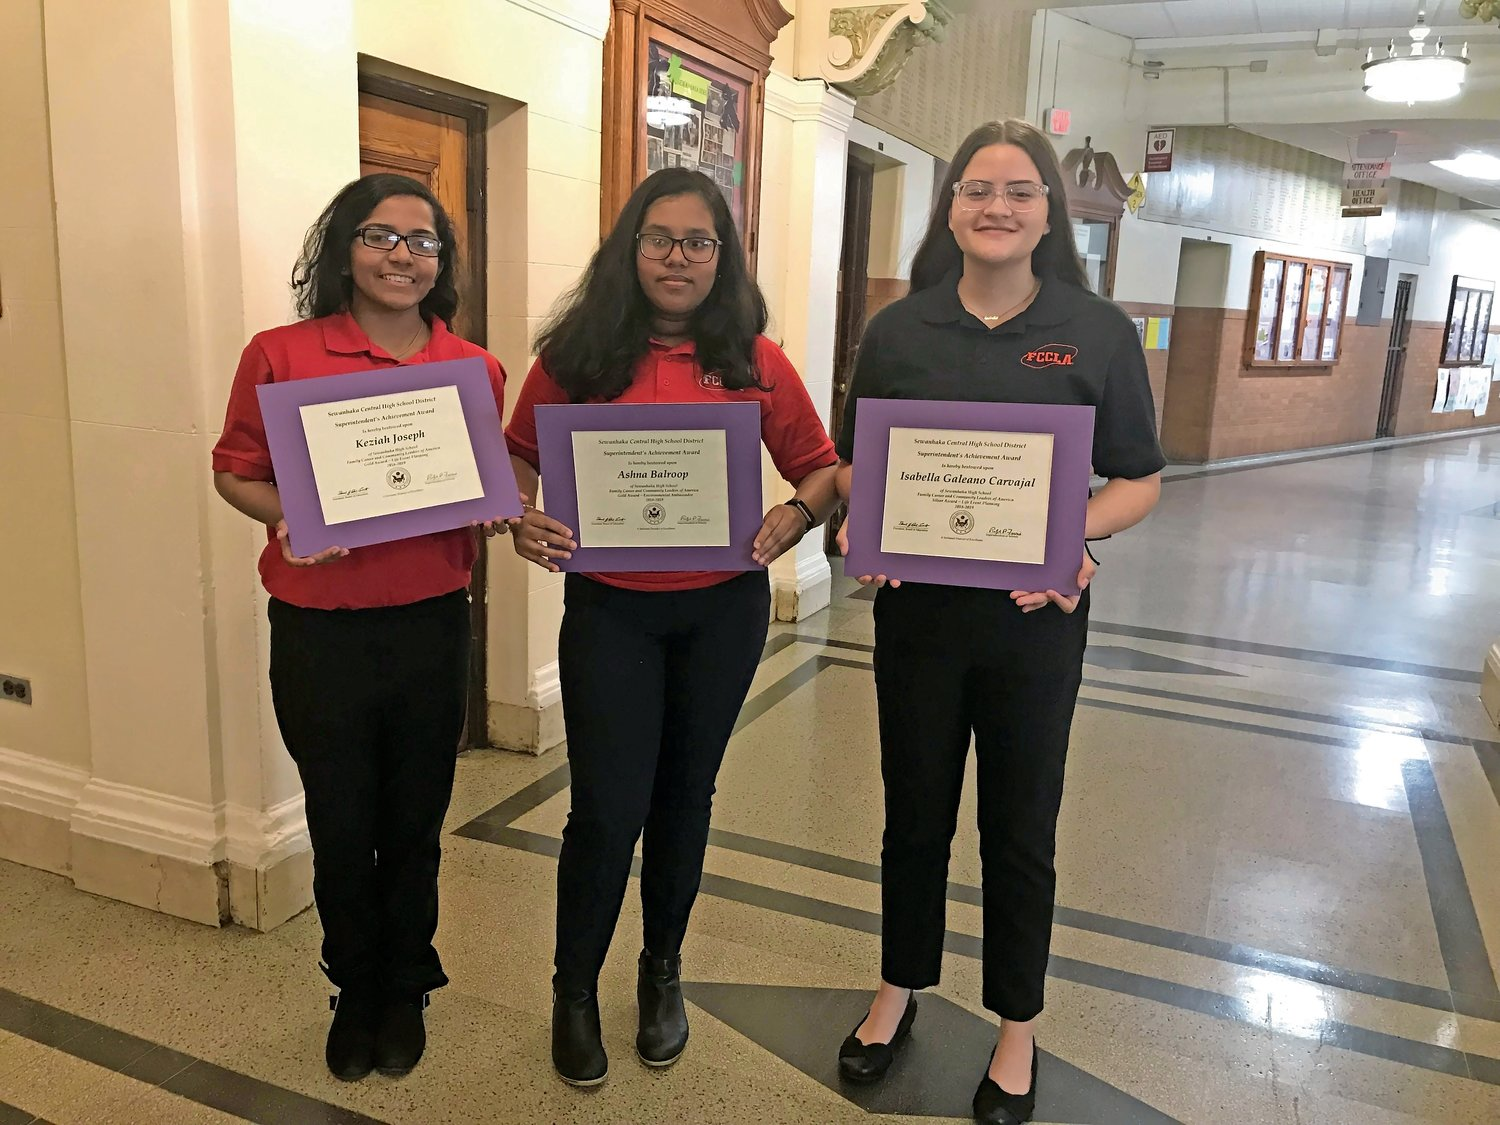 Keziah Joseph, Ashna Balroop and Isabella Galeano earned awards at STAR Events in 2019, above.